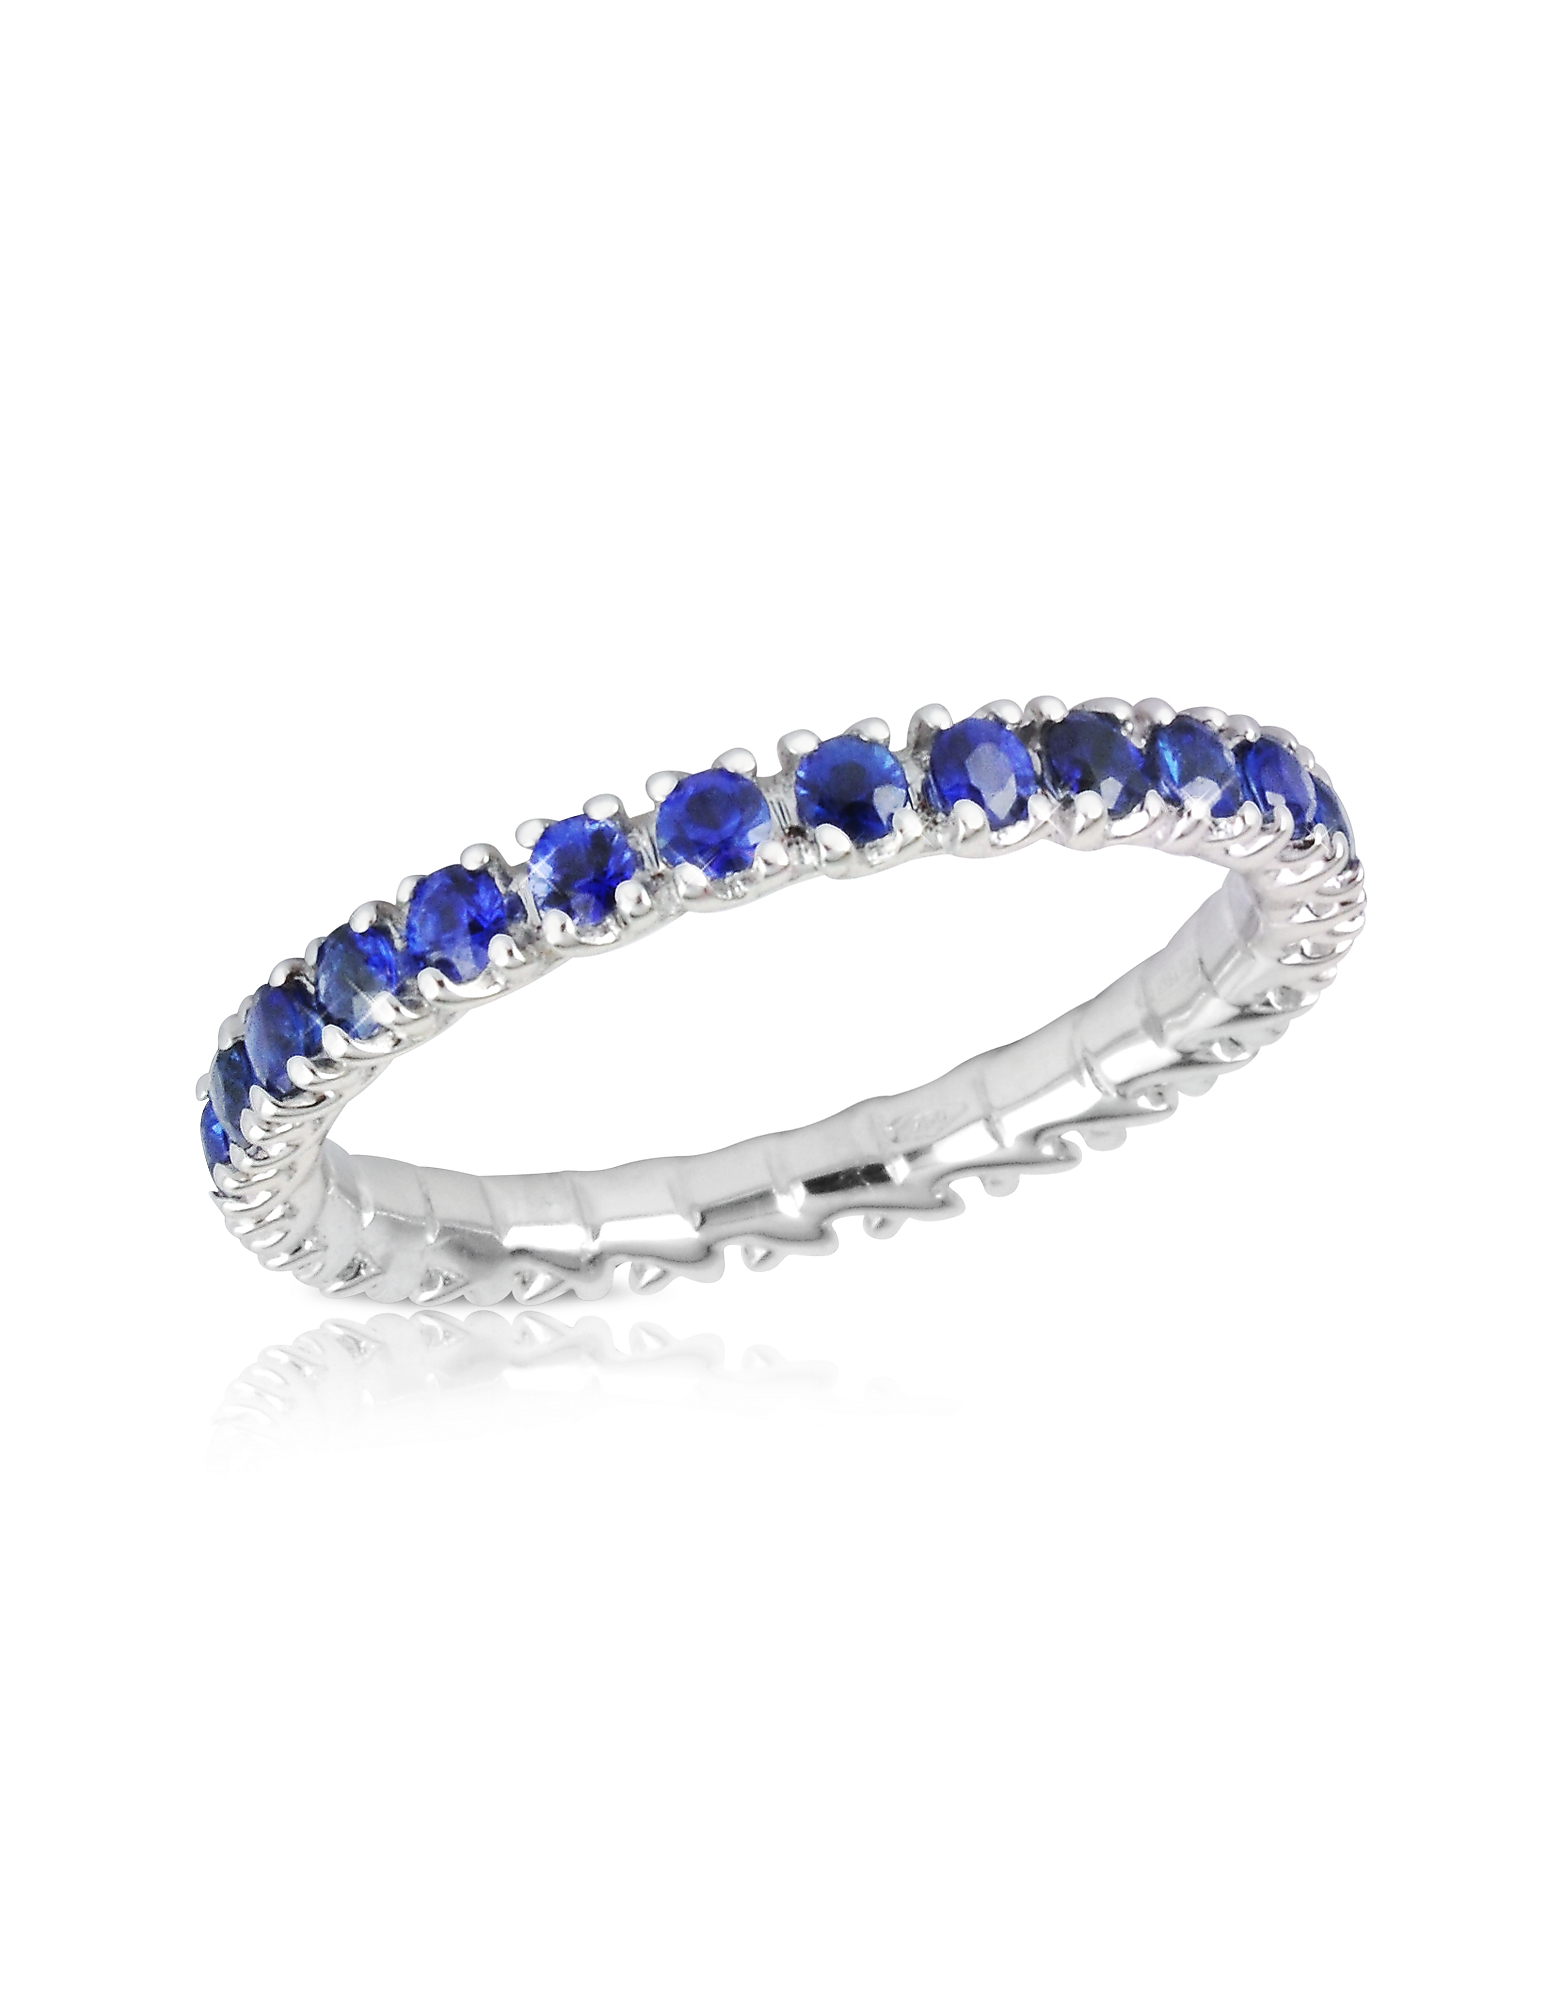 Forzieri Rings, Blue Sapphires 18K Gold Eternity Band